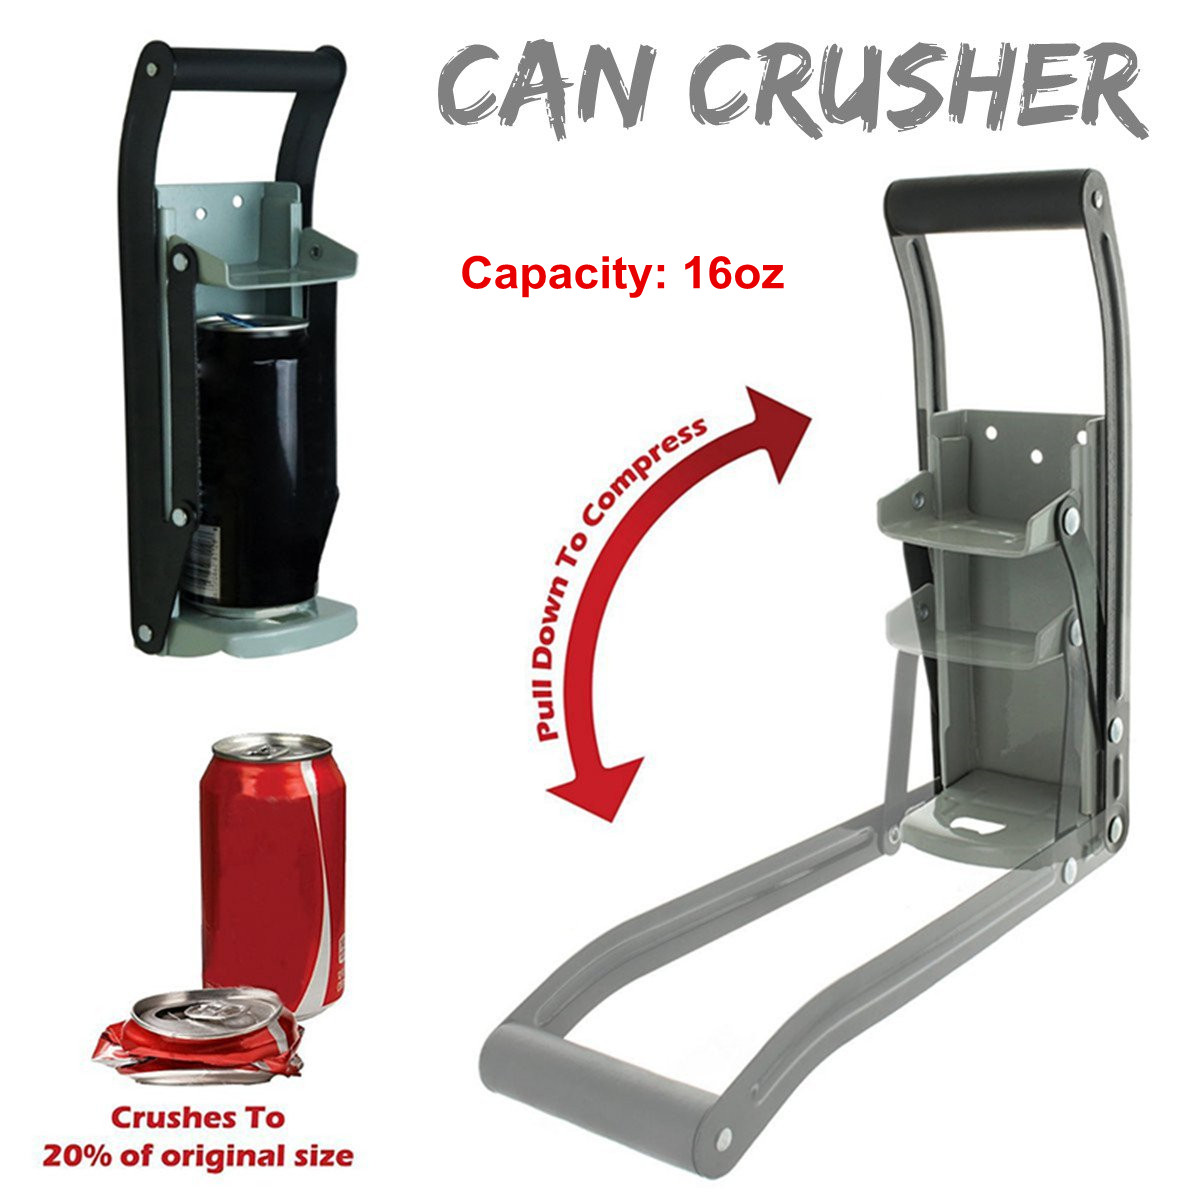 16 Ounces Heavy Duty Can Crusher Smasher Soda Beer Cola Budweiser Recycling Tool Home Dispensing Can Crusher Bottle Opener(China)